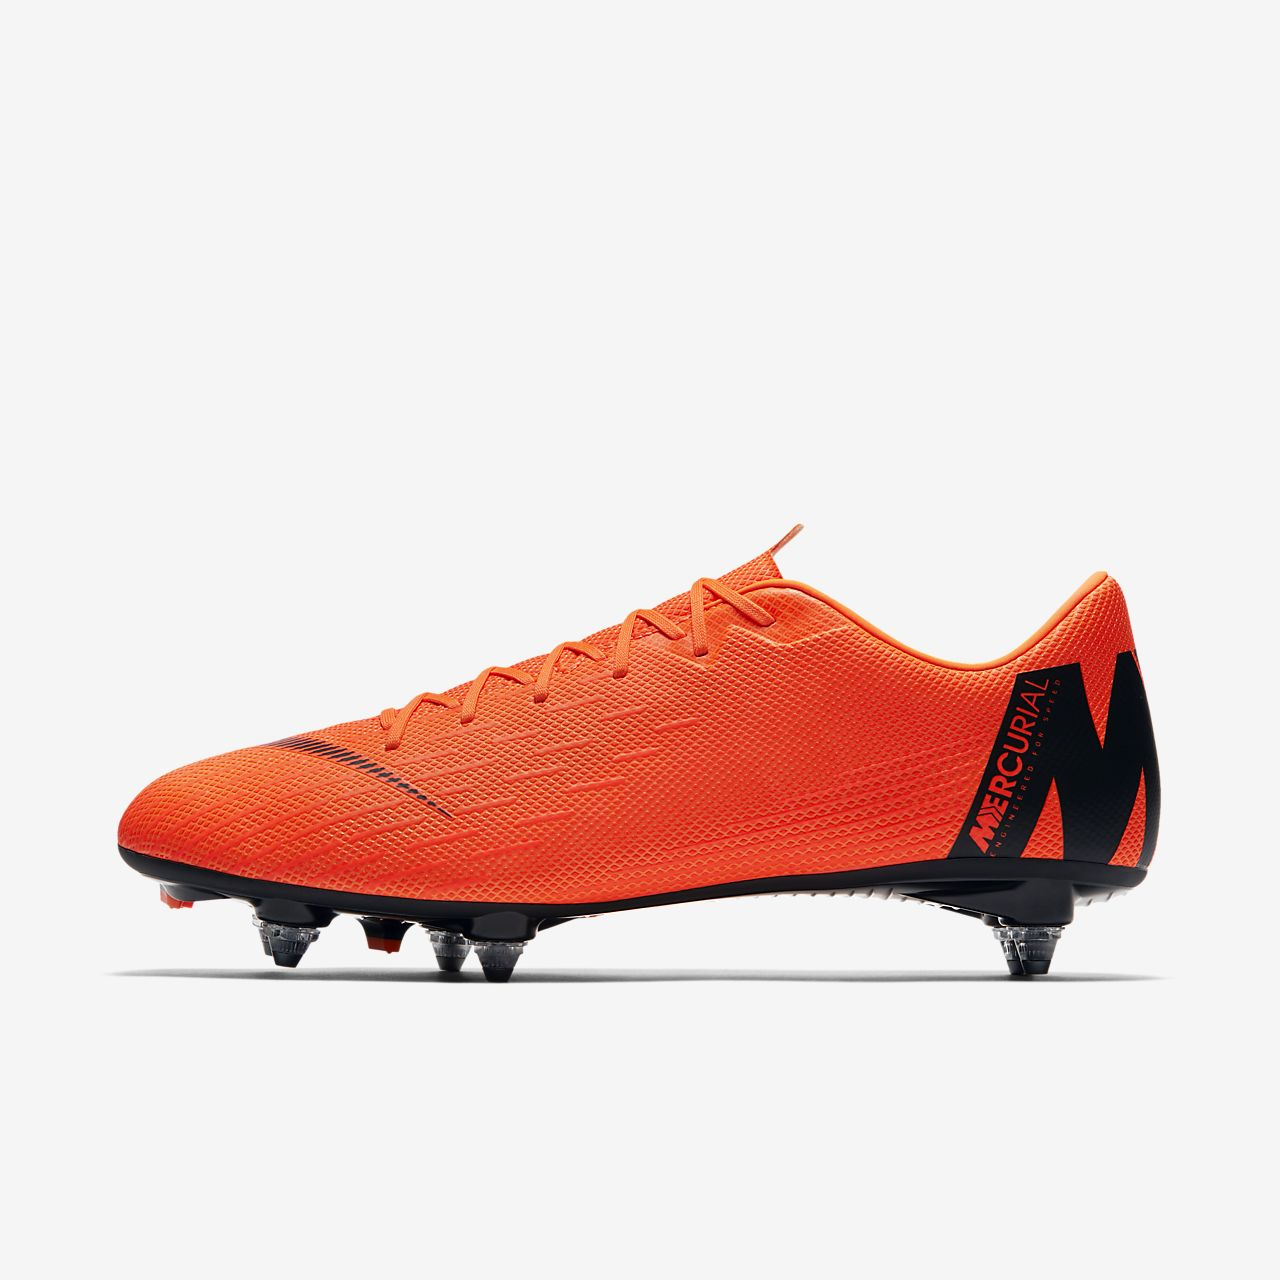 new arrival f3b8f f3626 Nike Mercurial Superfly VI Academy SG-PRO Football Boot